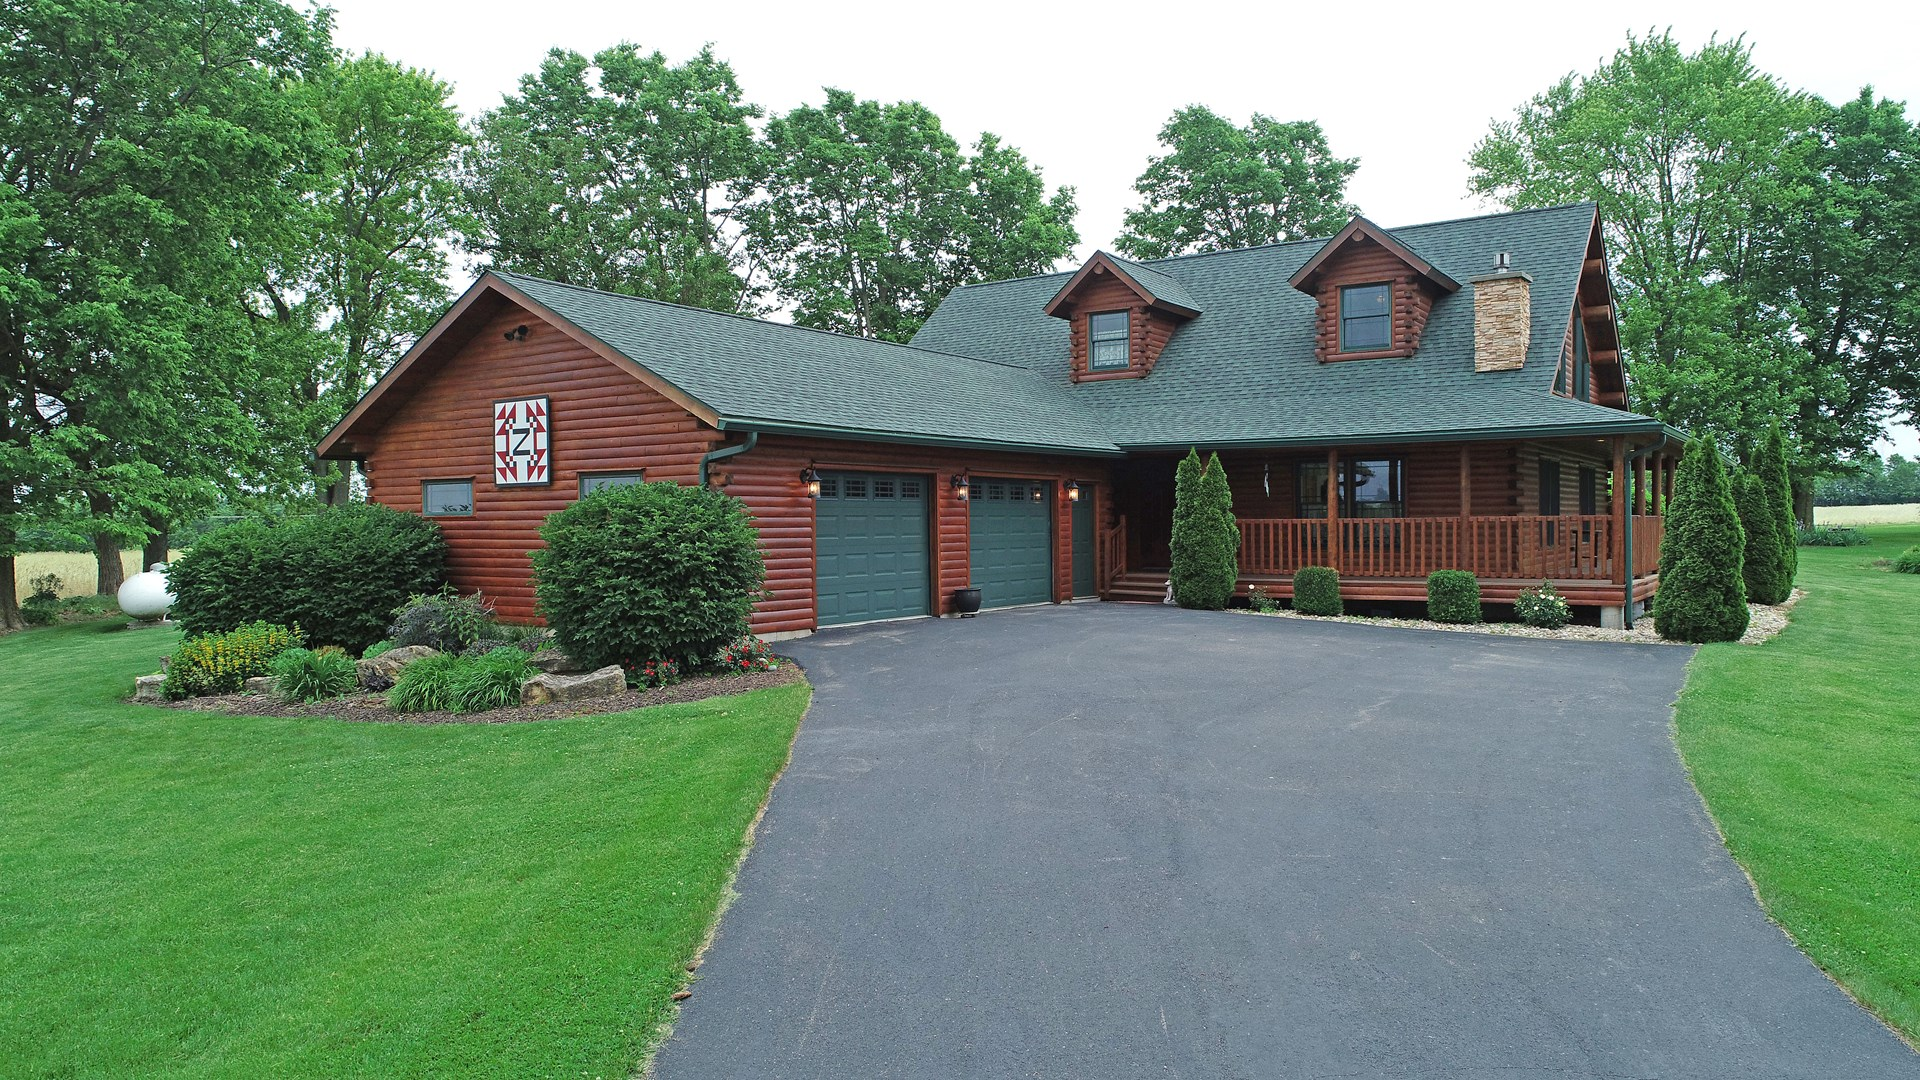 2005 custom WARD Cedar Log home in NW Illinois on 1+ acre